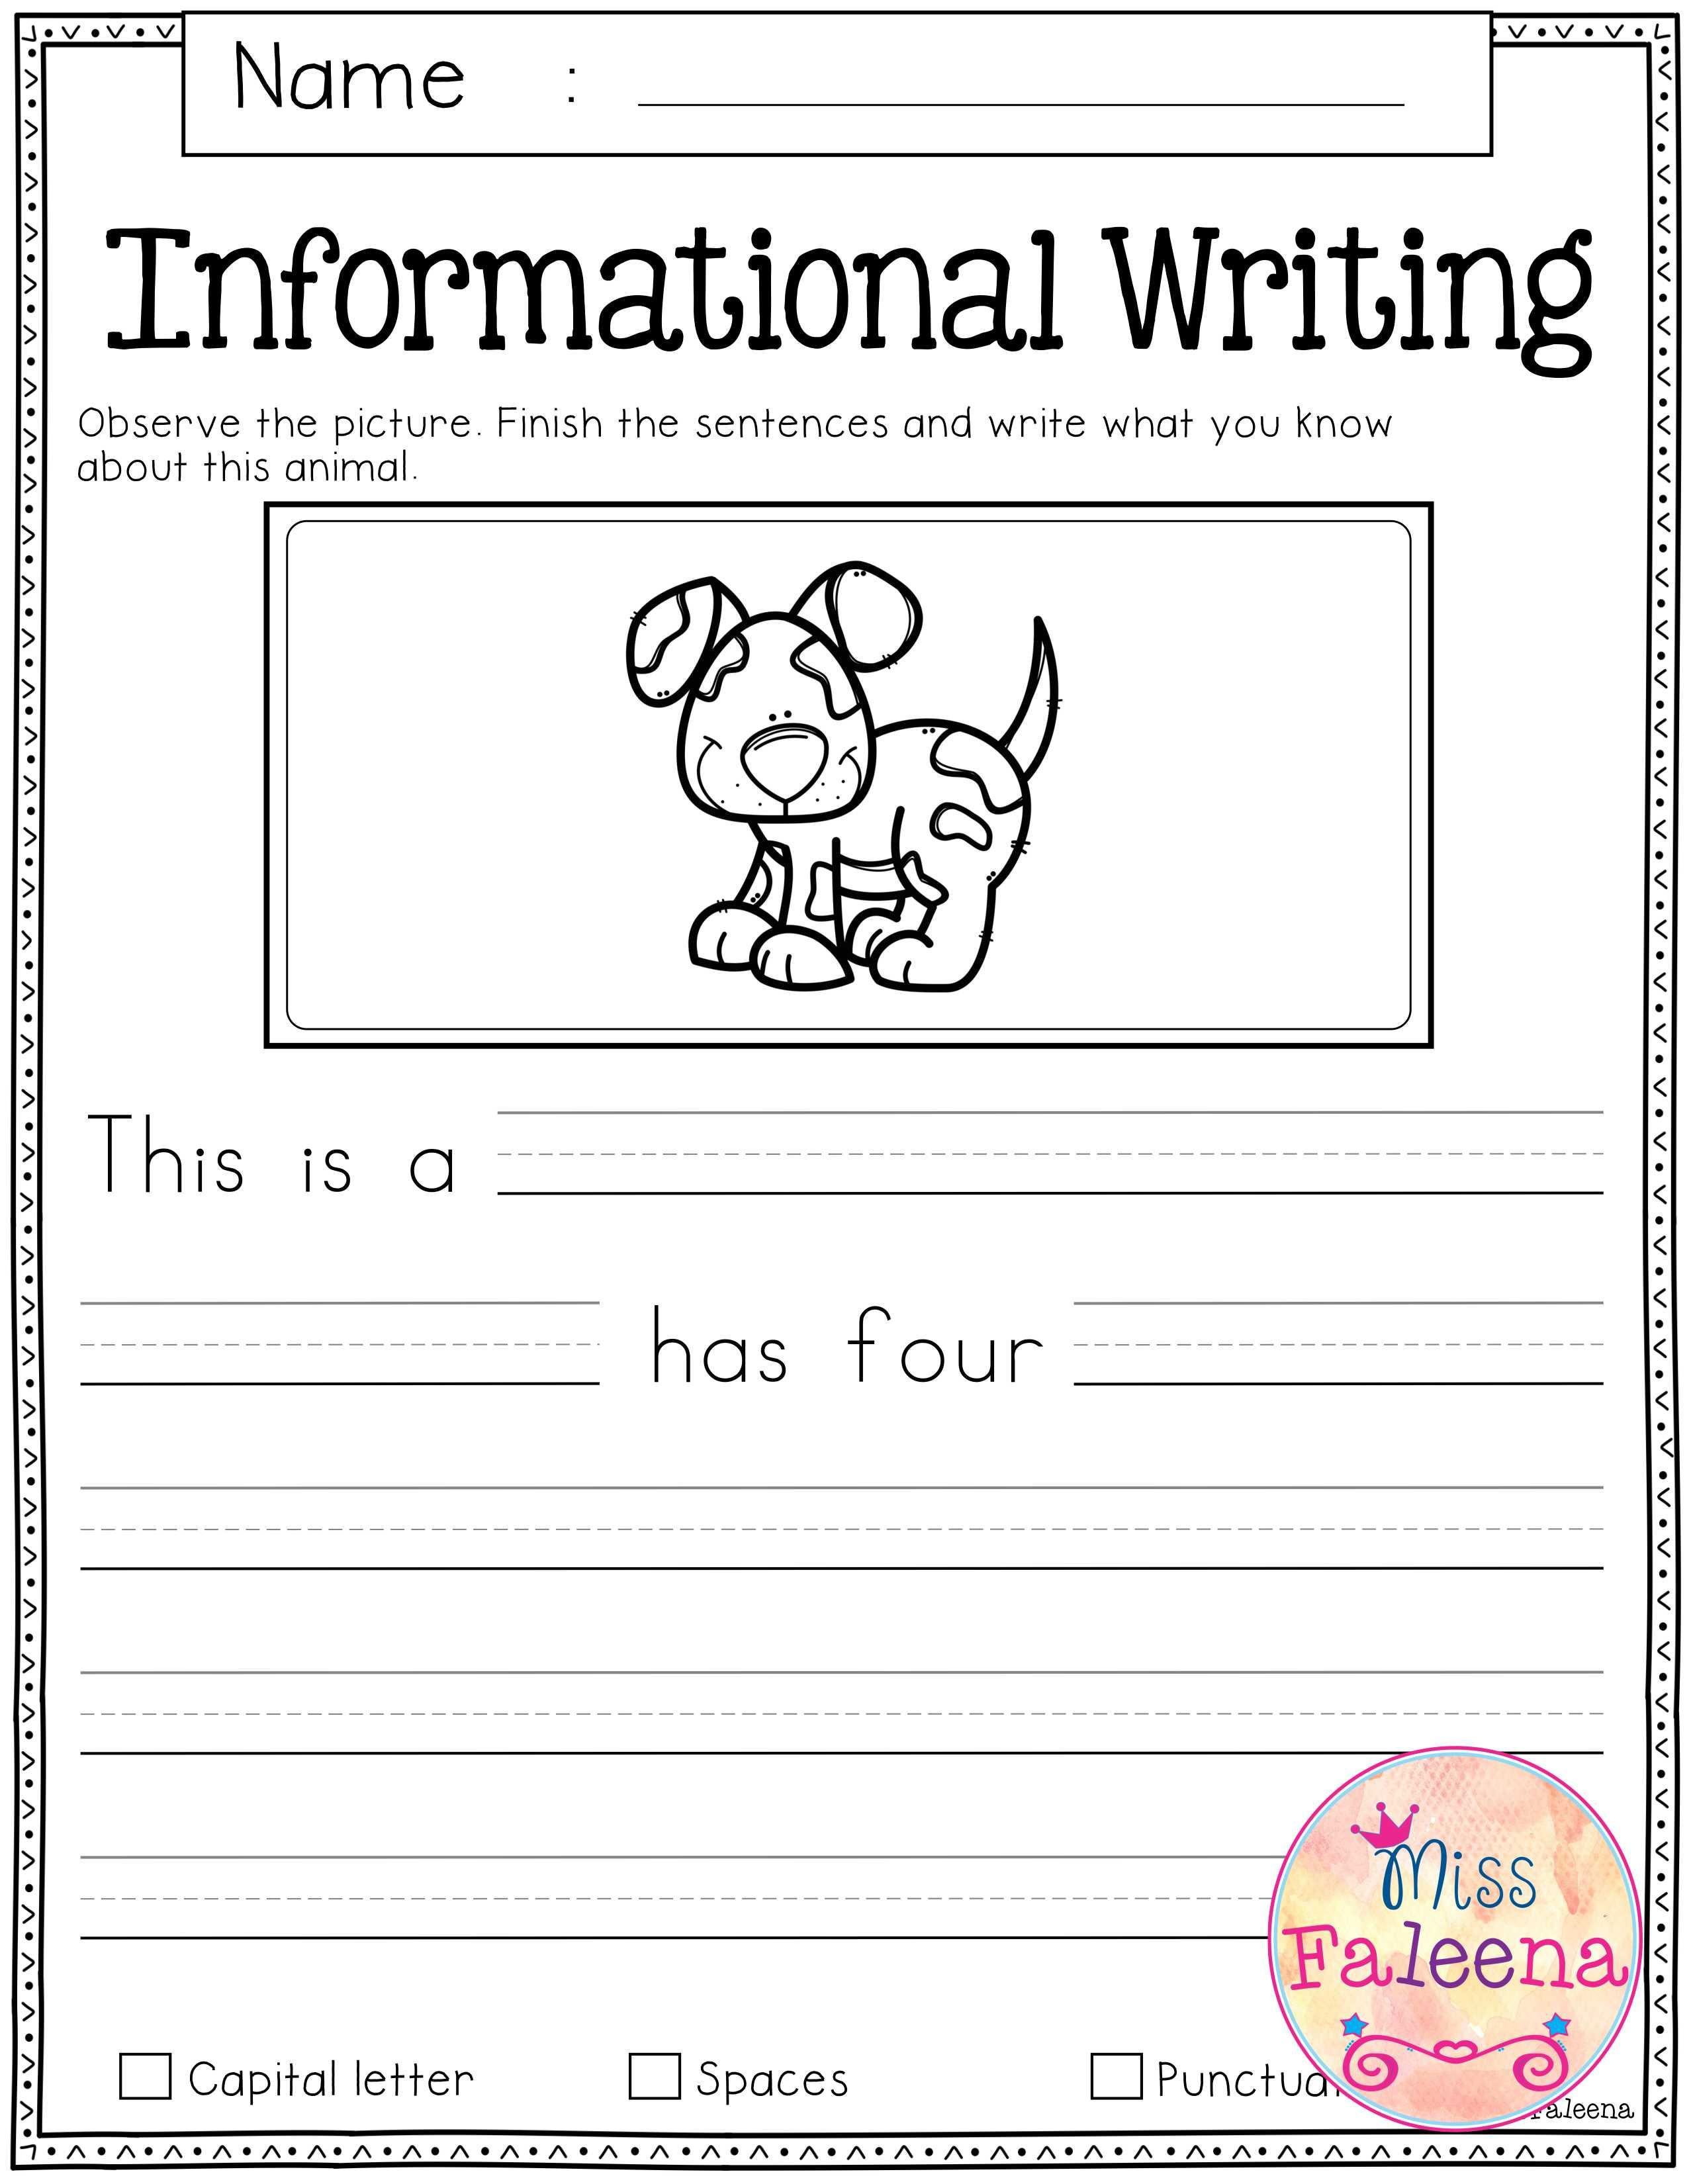 Free Writing Prompts | Kindergarten Writing Prompts, First